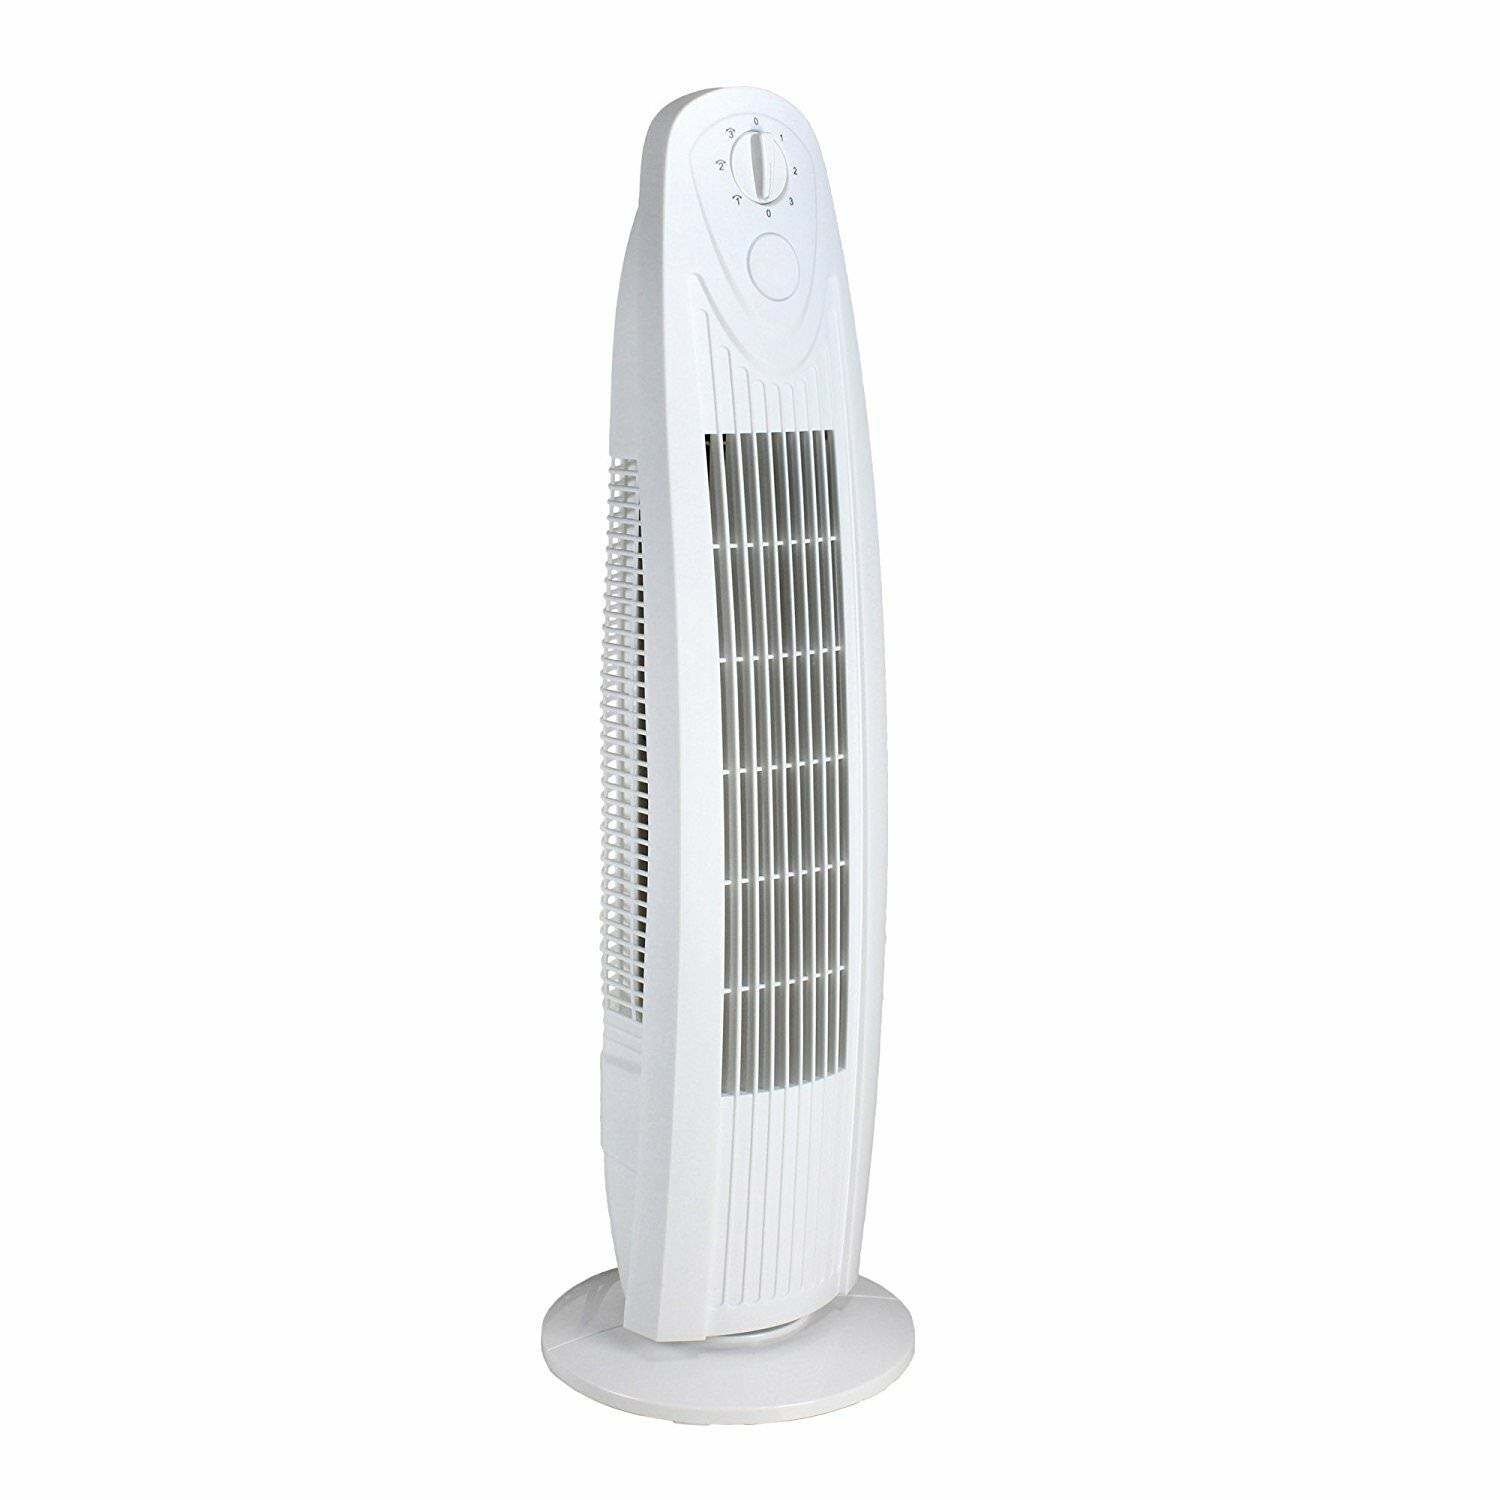 Oscillating 29 Inch 3 Speed Tower Fan for Home or Office, Qu